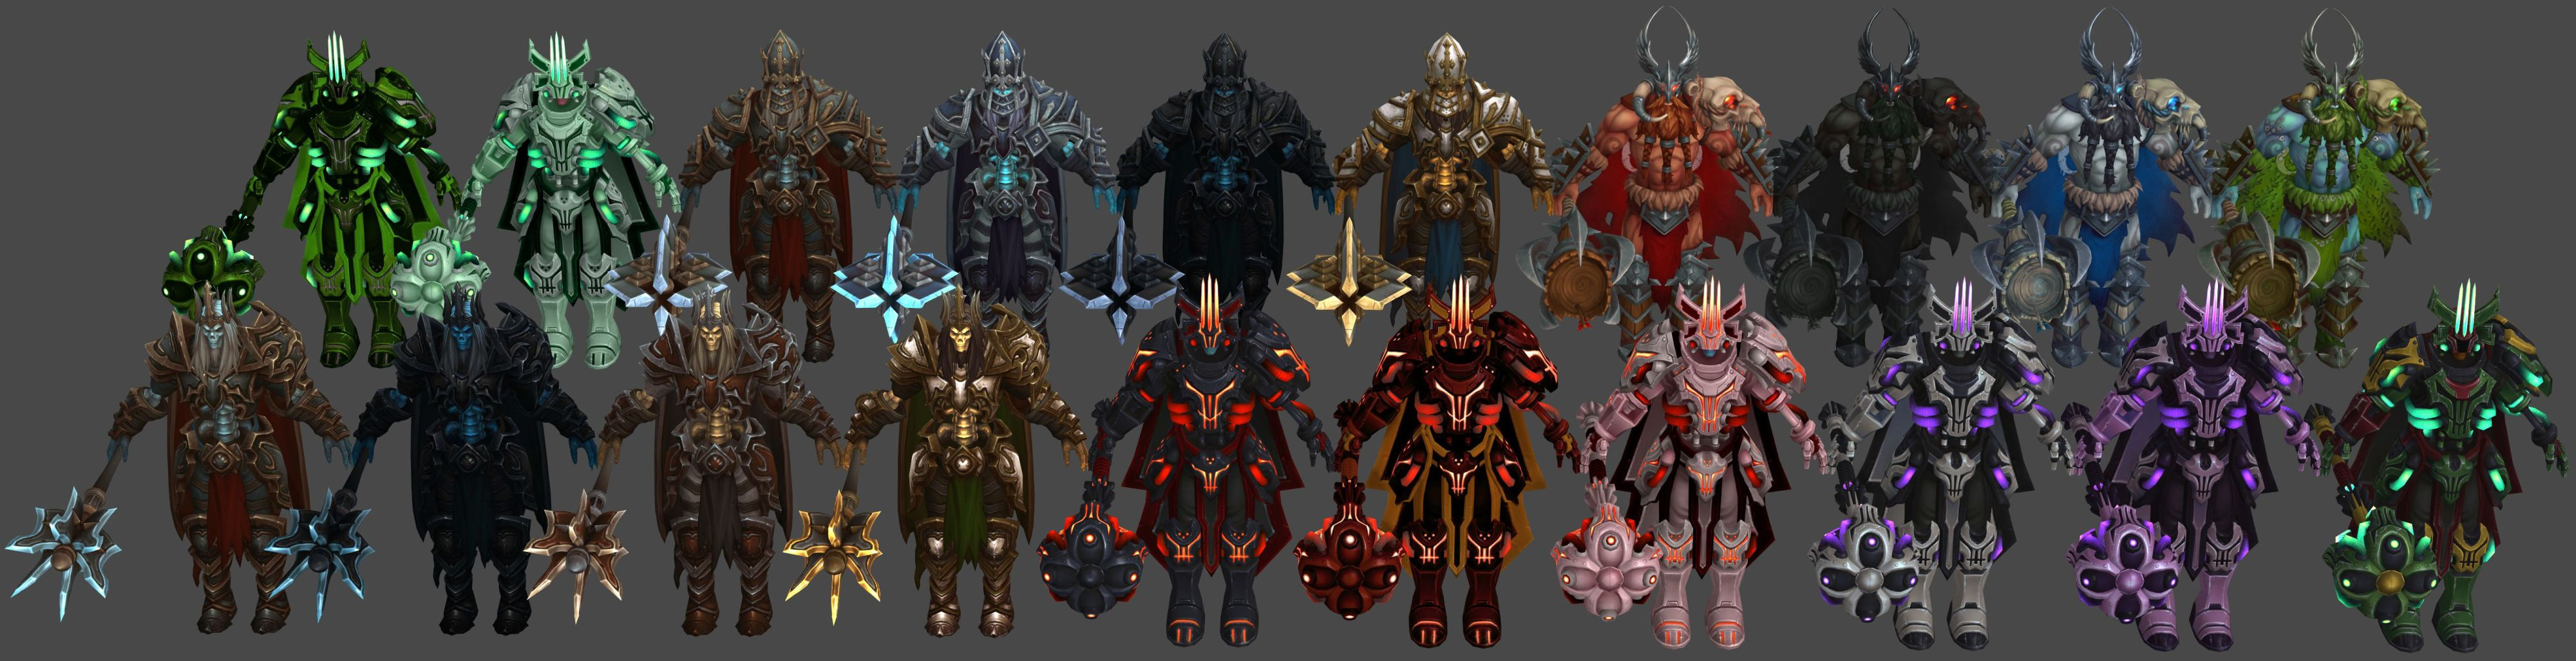 Heroes Of The Storm Leoric Pack Xps Only By Lezisell On Deviantart This is a starting point for leoric. heroes of the storm leoric pack xps